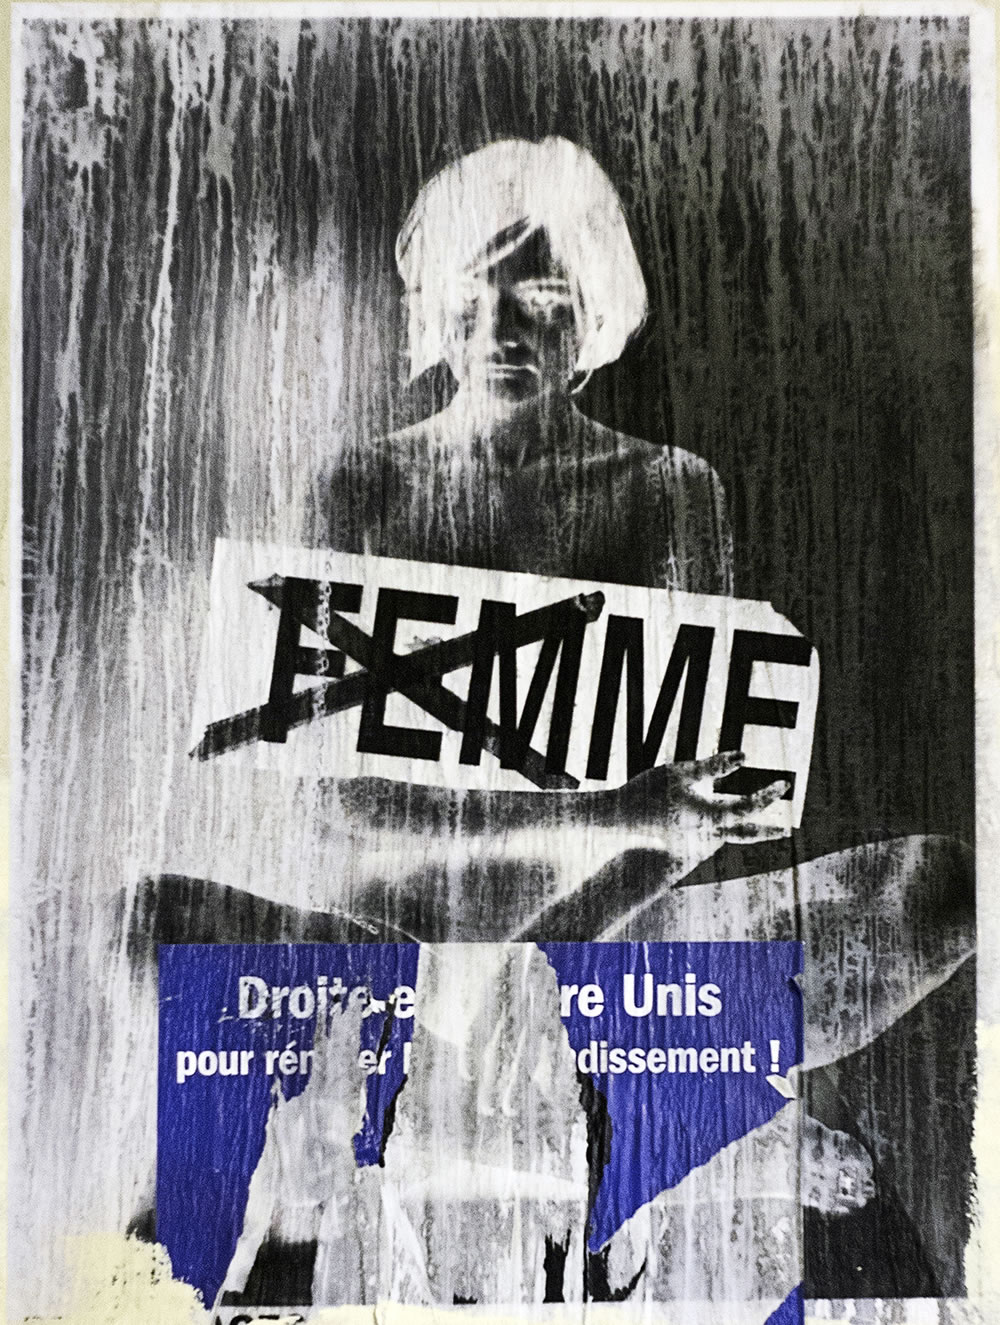 Street art semi-destroyed.  Femme - Woman.  Droits - Rights.  Unis - United.